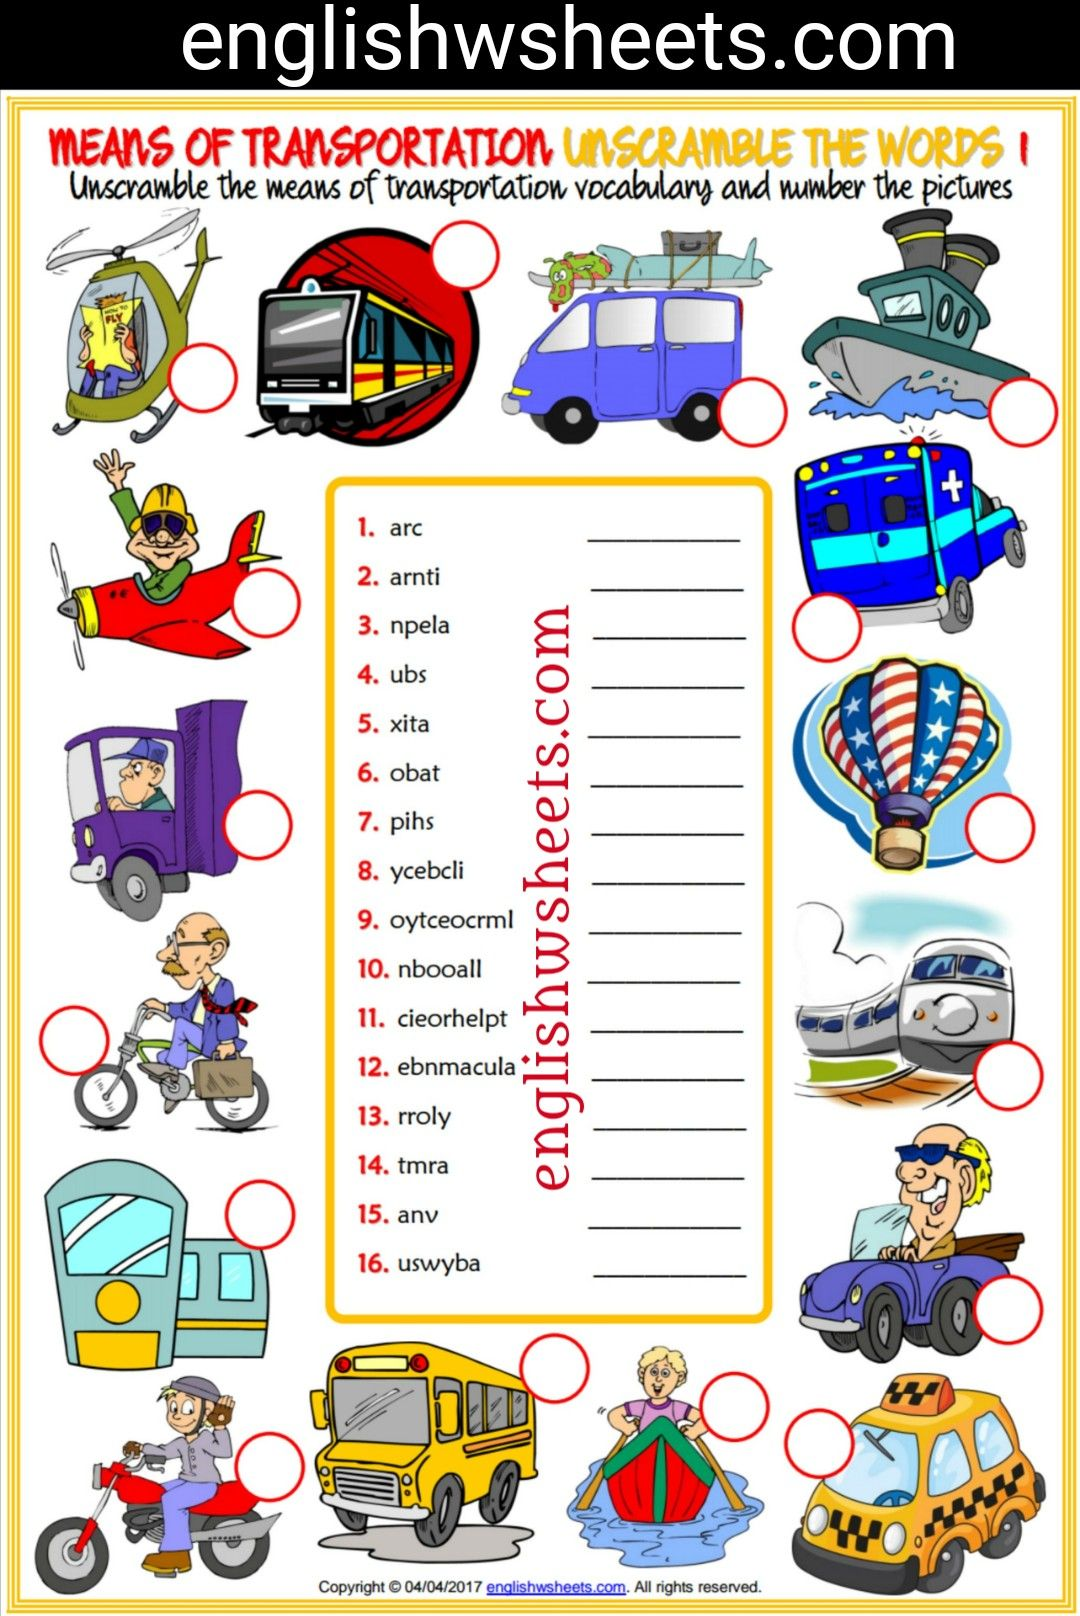 Means Of Transportation Esl Printable Unscramble The Words Worksheets For Kids Means